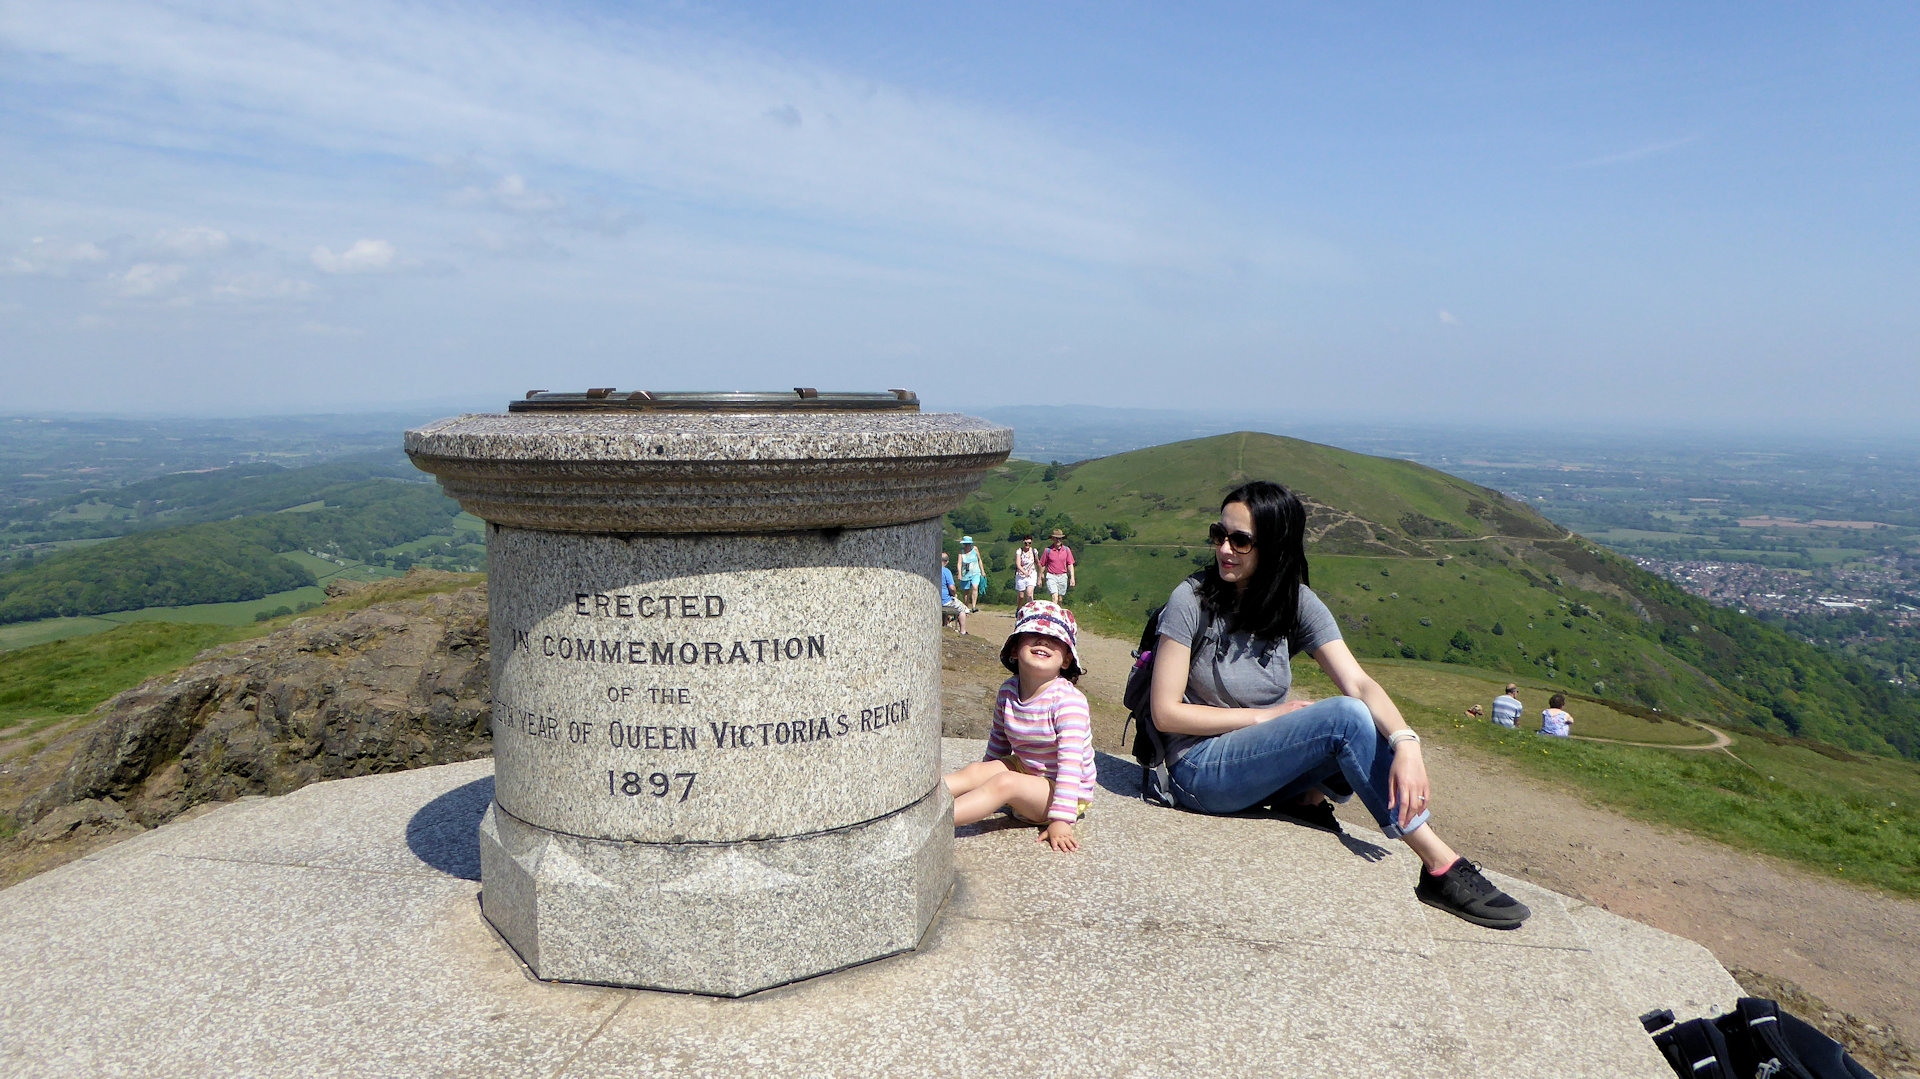 The summit of Worcestershire Beacon in the Malvern Hills